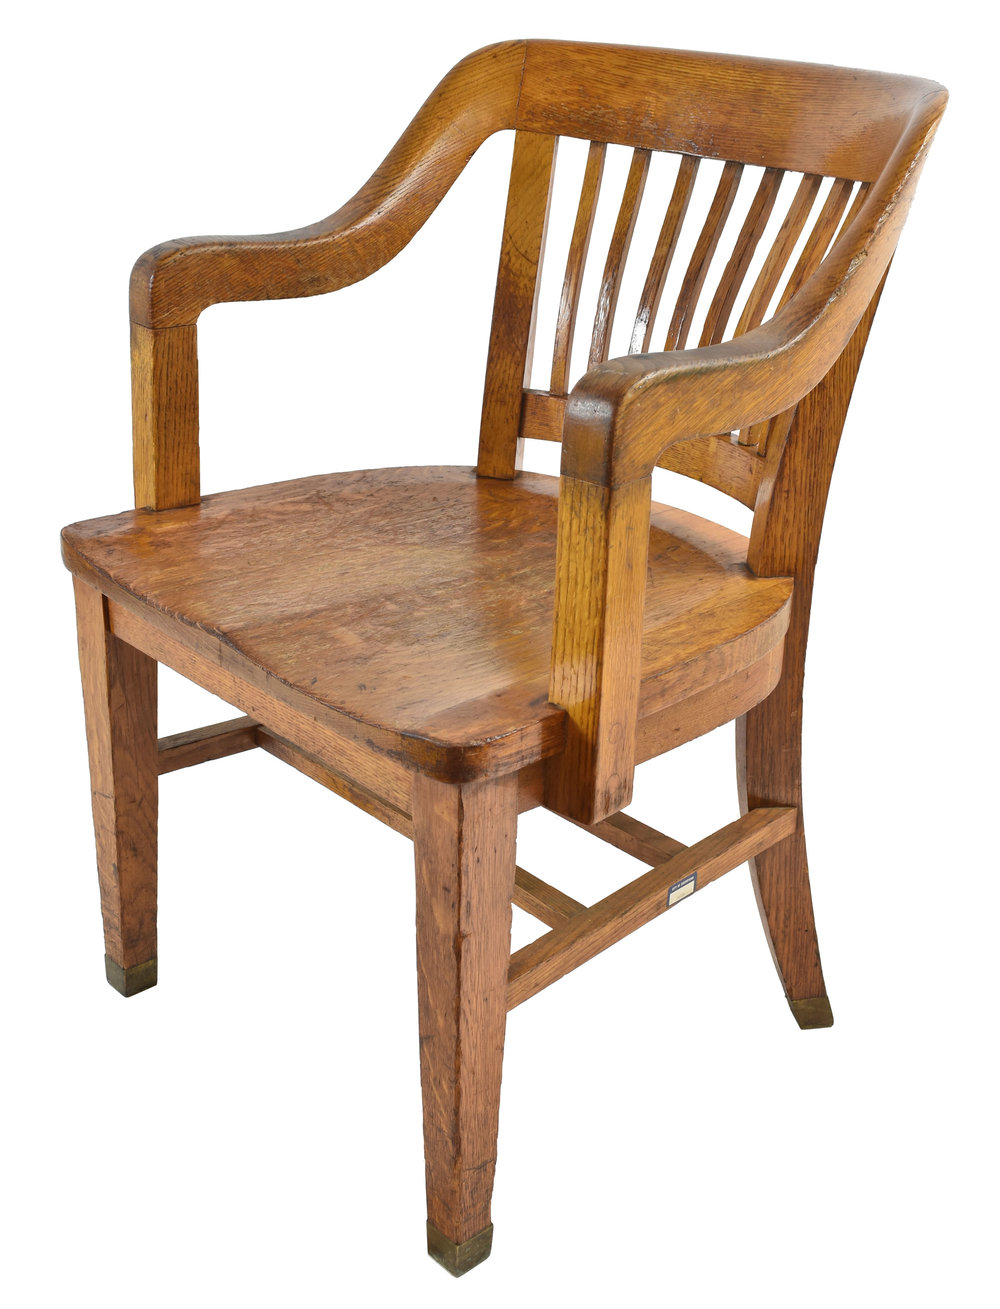 47978 courtroom oak chairs 2.jpg